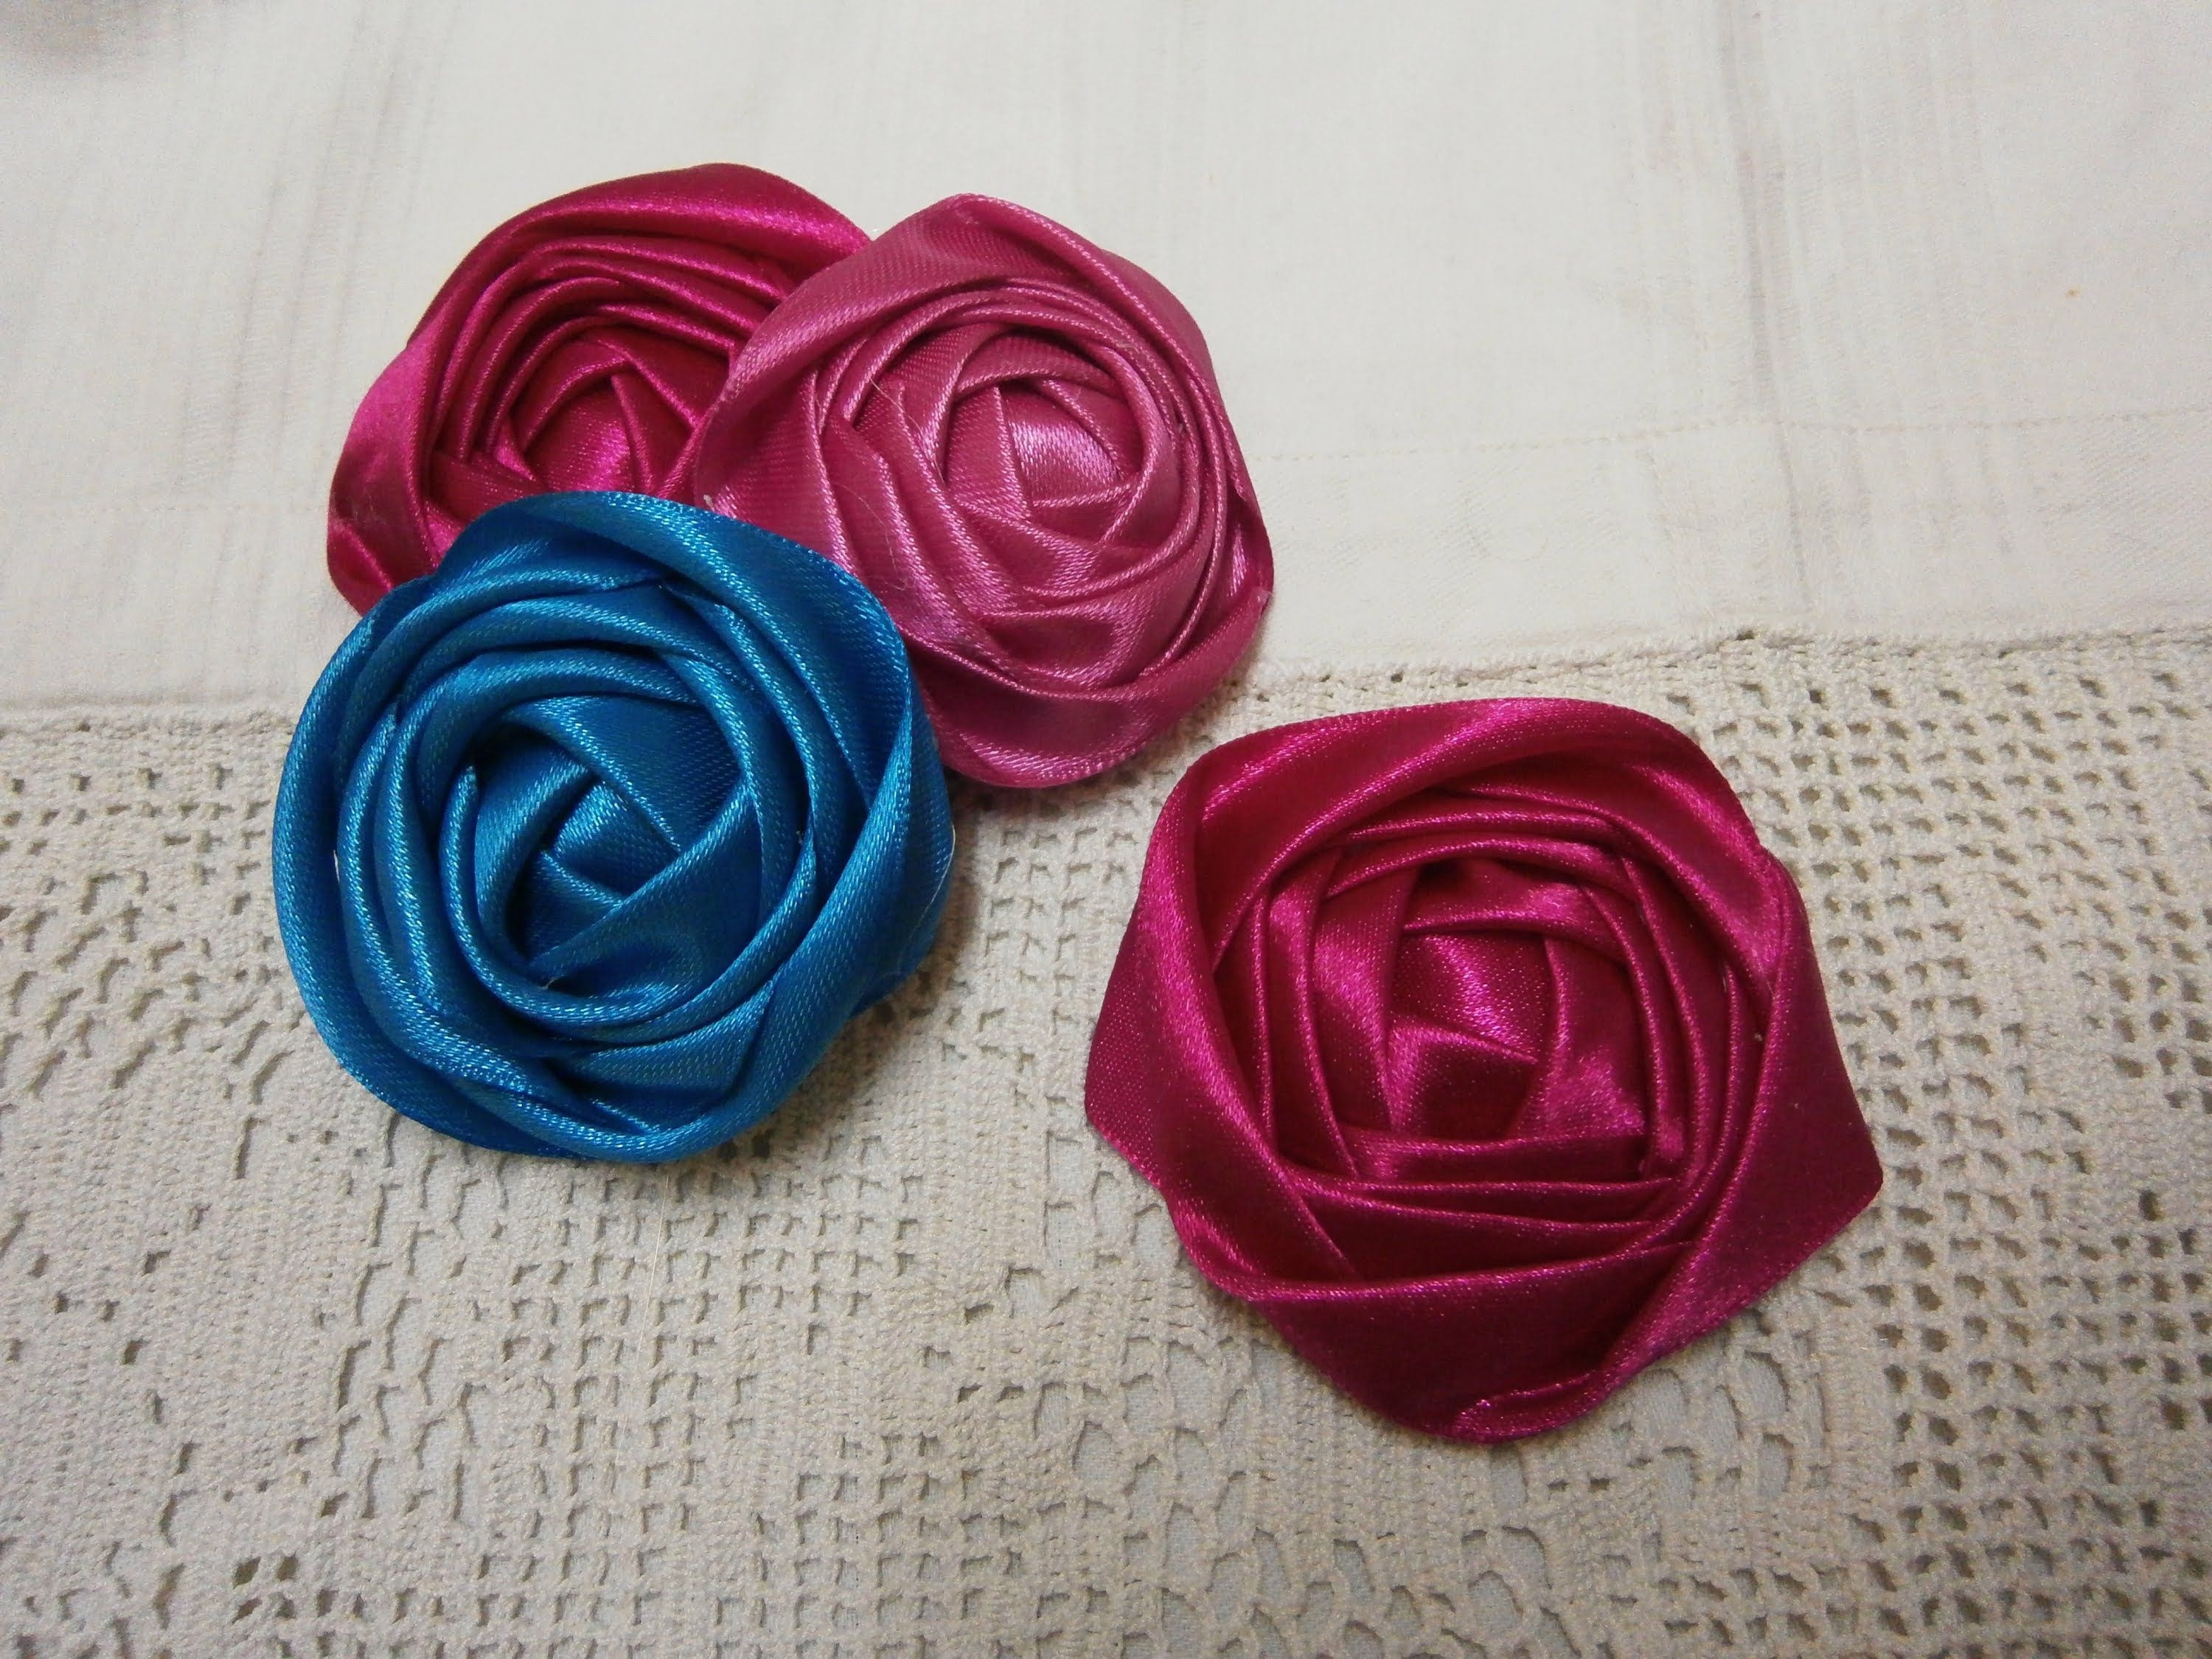 Hello everyone in this tutorial i want to show you how to make ribbon rose